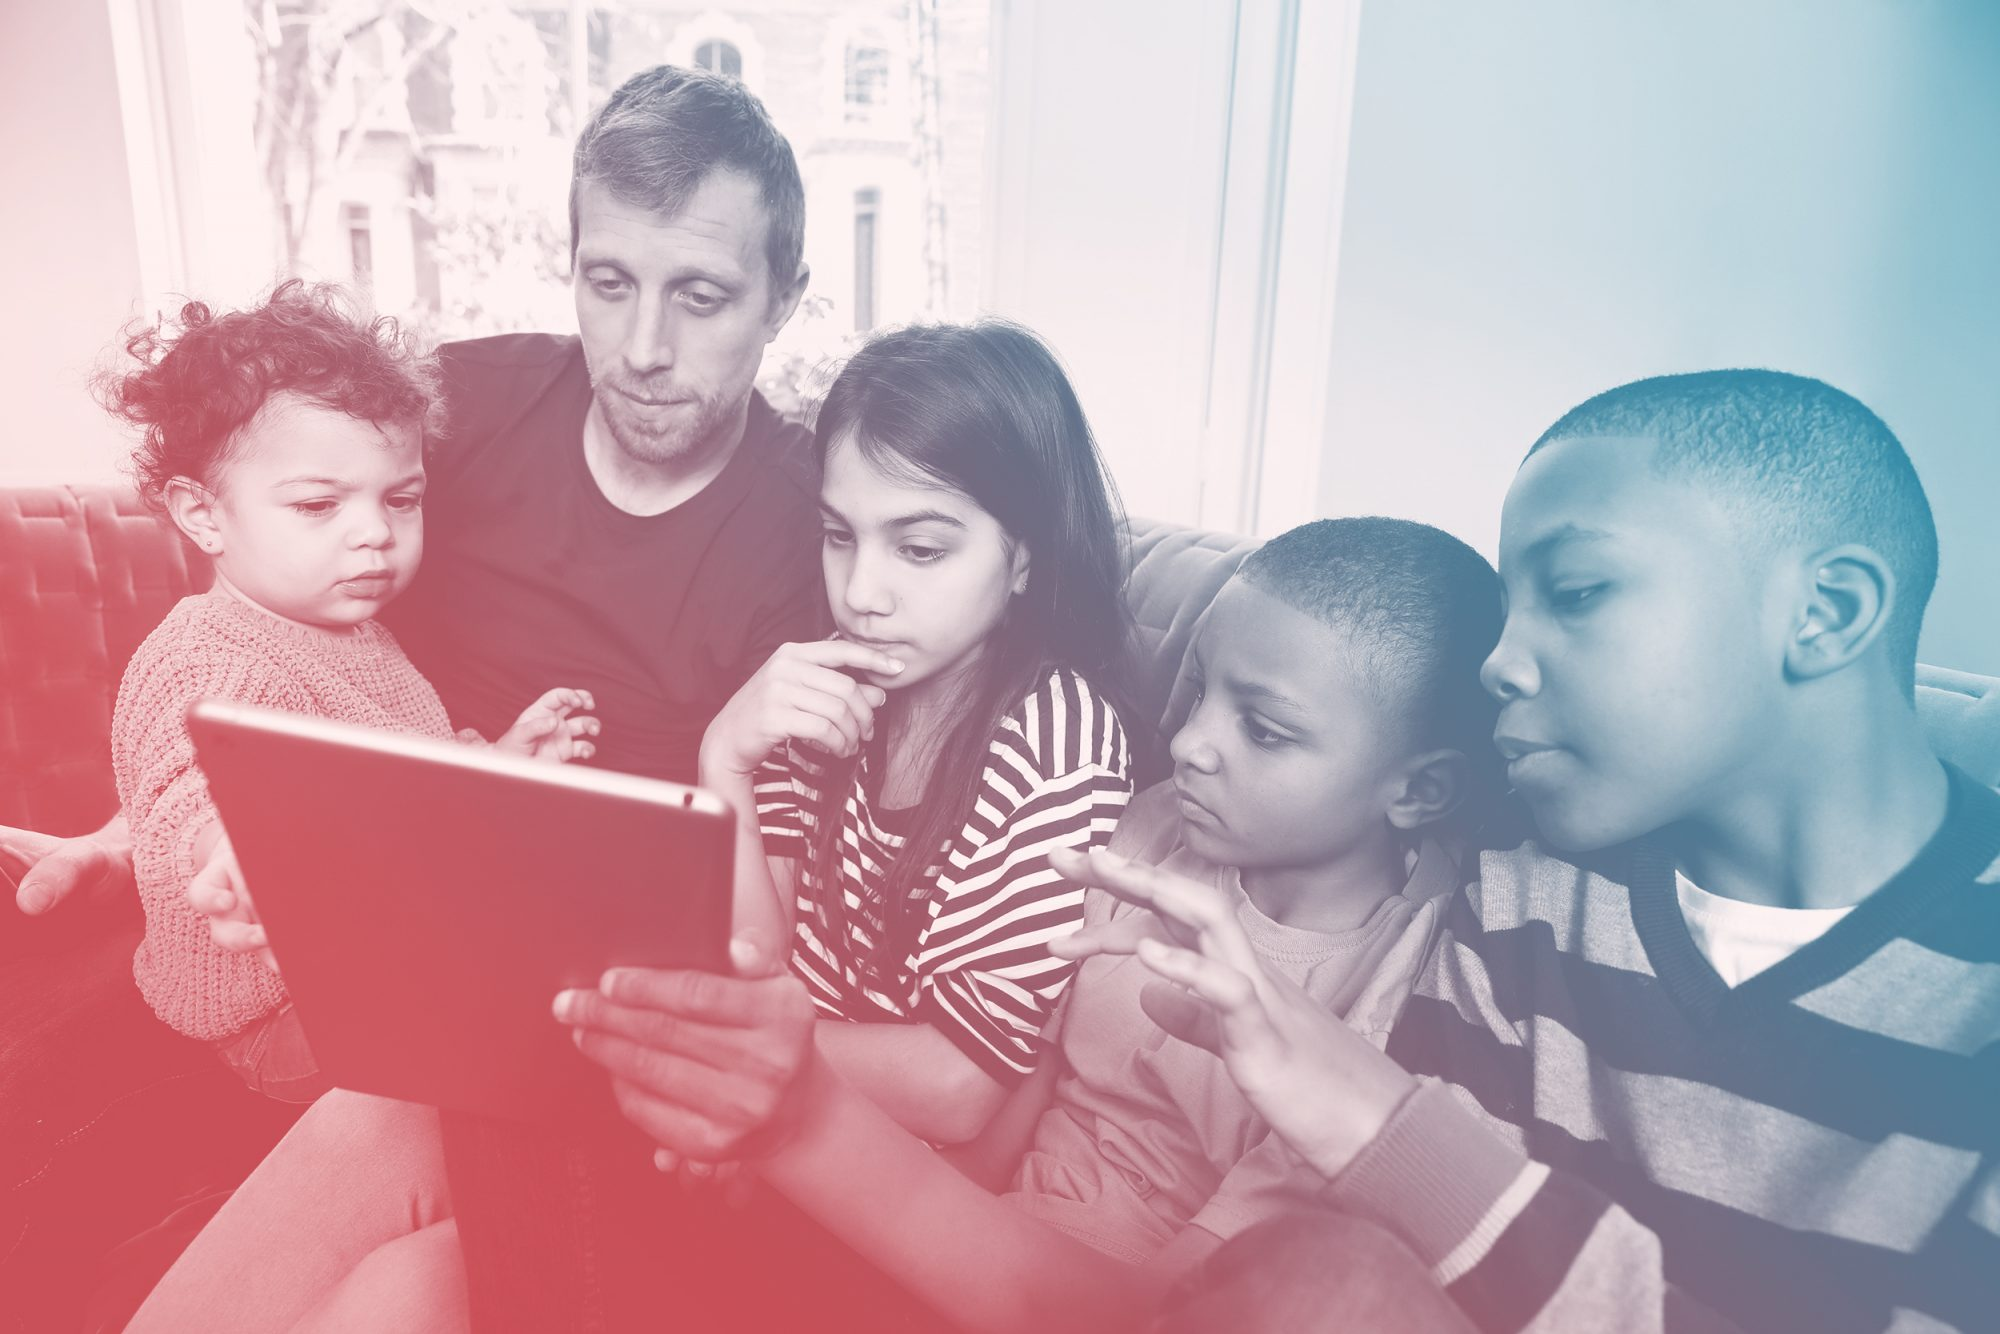 Single father with four children looking at digital tablet -Blended family using digital device on a sofa and concentrating